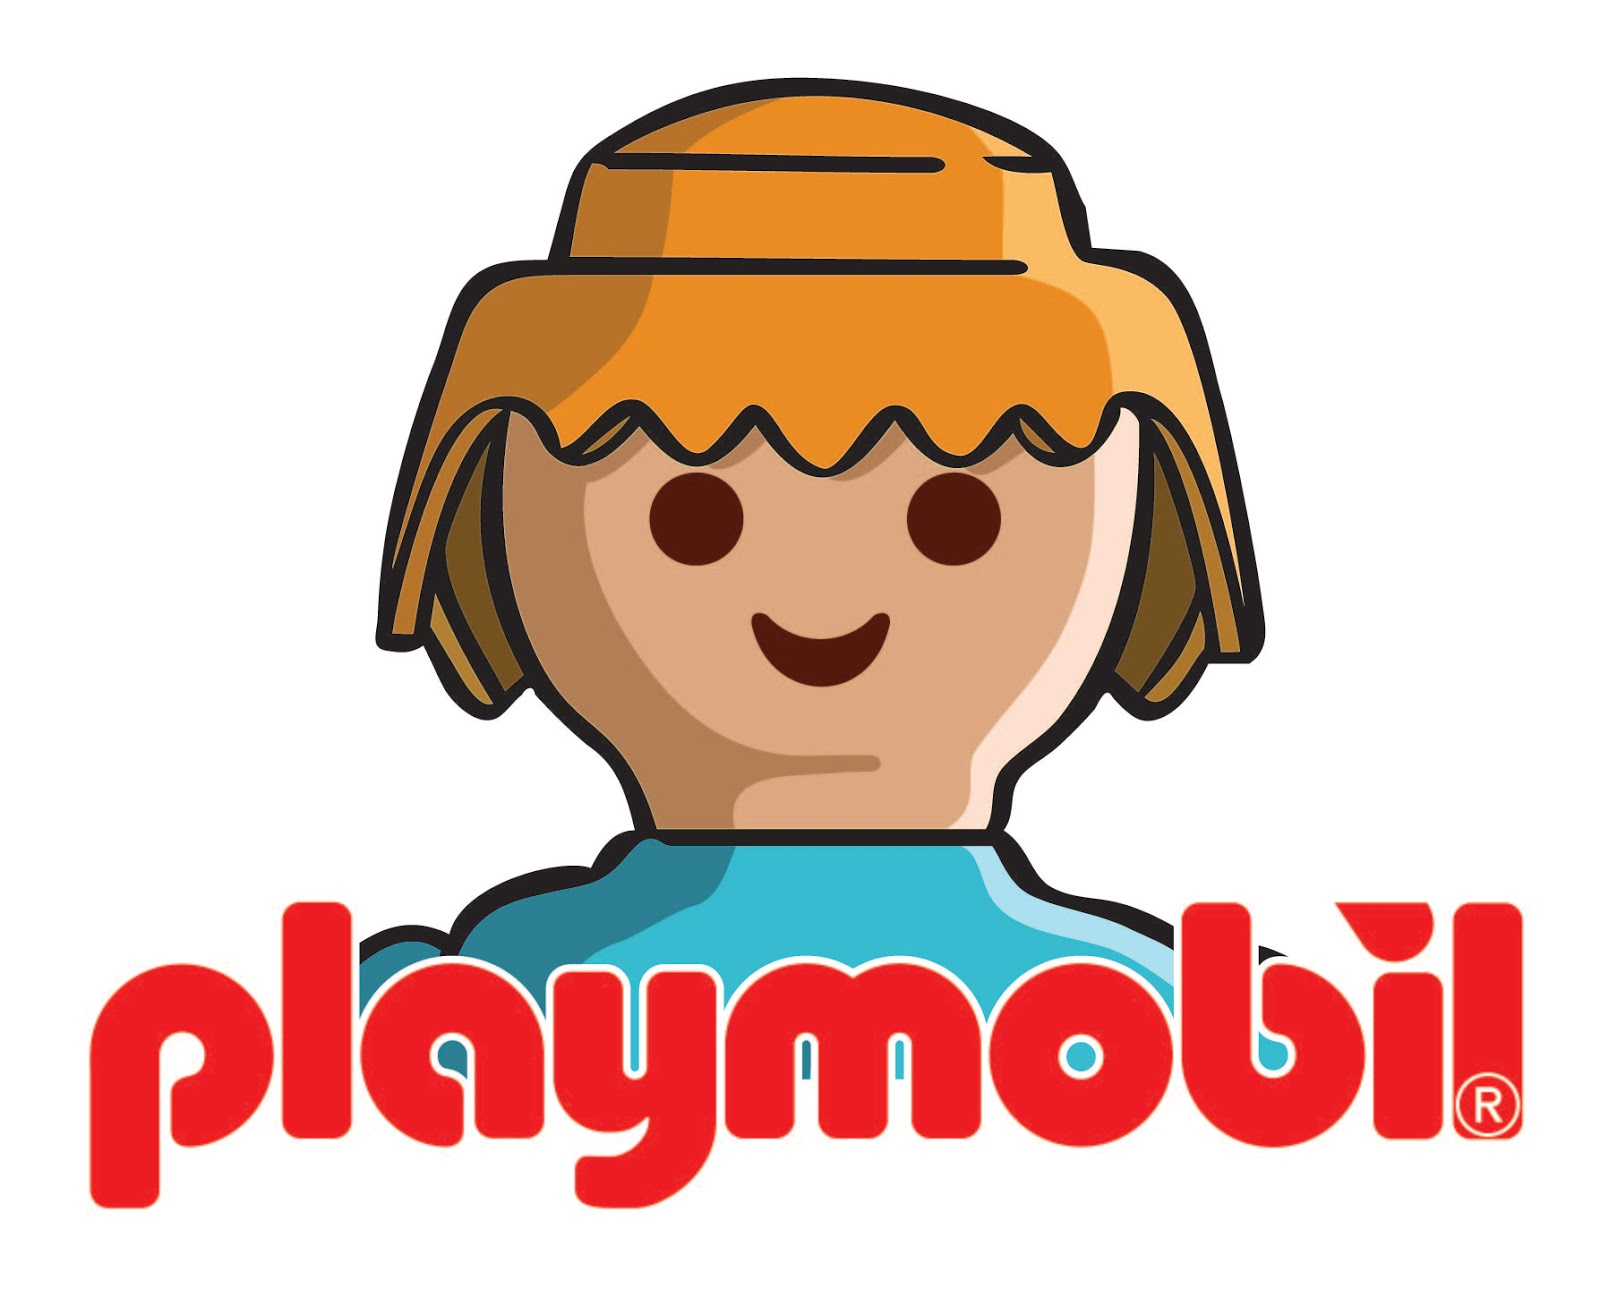 playmobil vs lego lego clip art black and white lego clip art no copyright